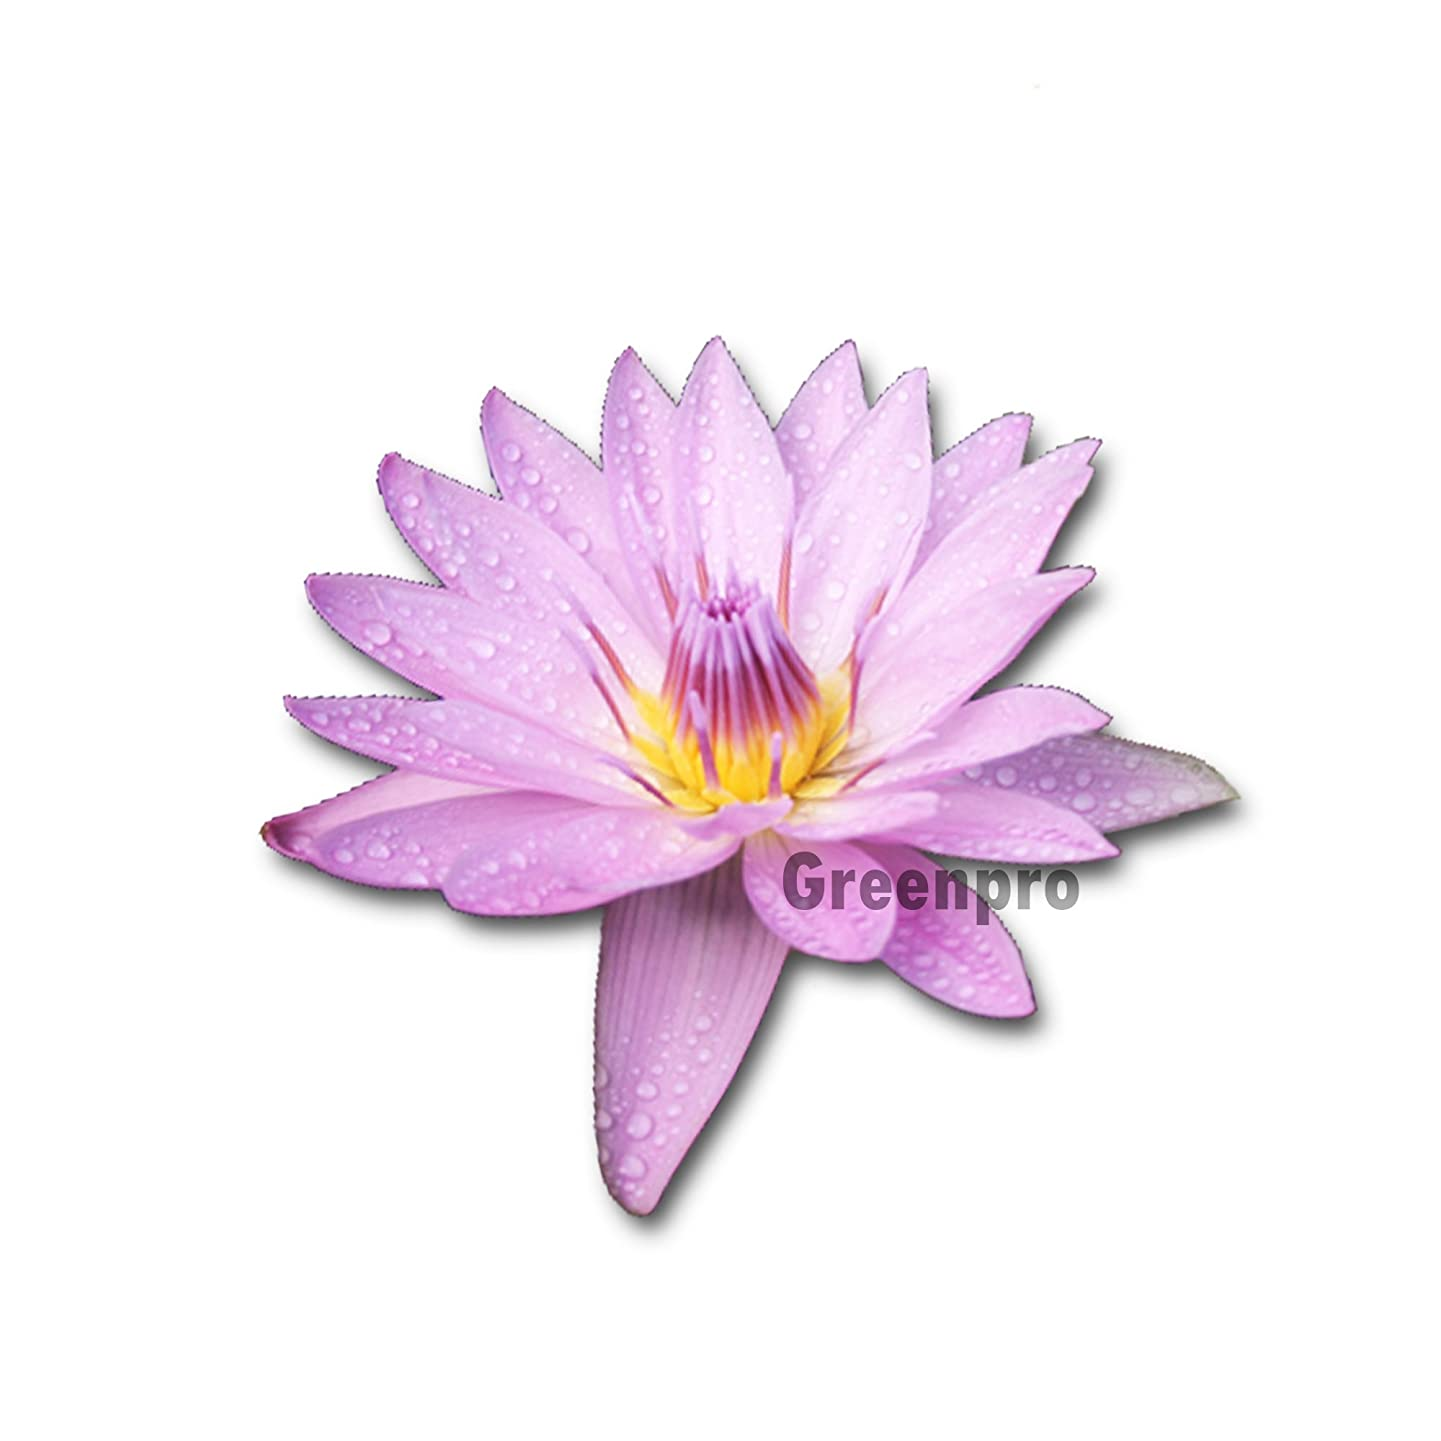 Live Aquatic Plant Nymphaea Pink General Pershing Water Lilies Tuber for Aquarium Freshwater Fish Pond by Greenpro